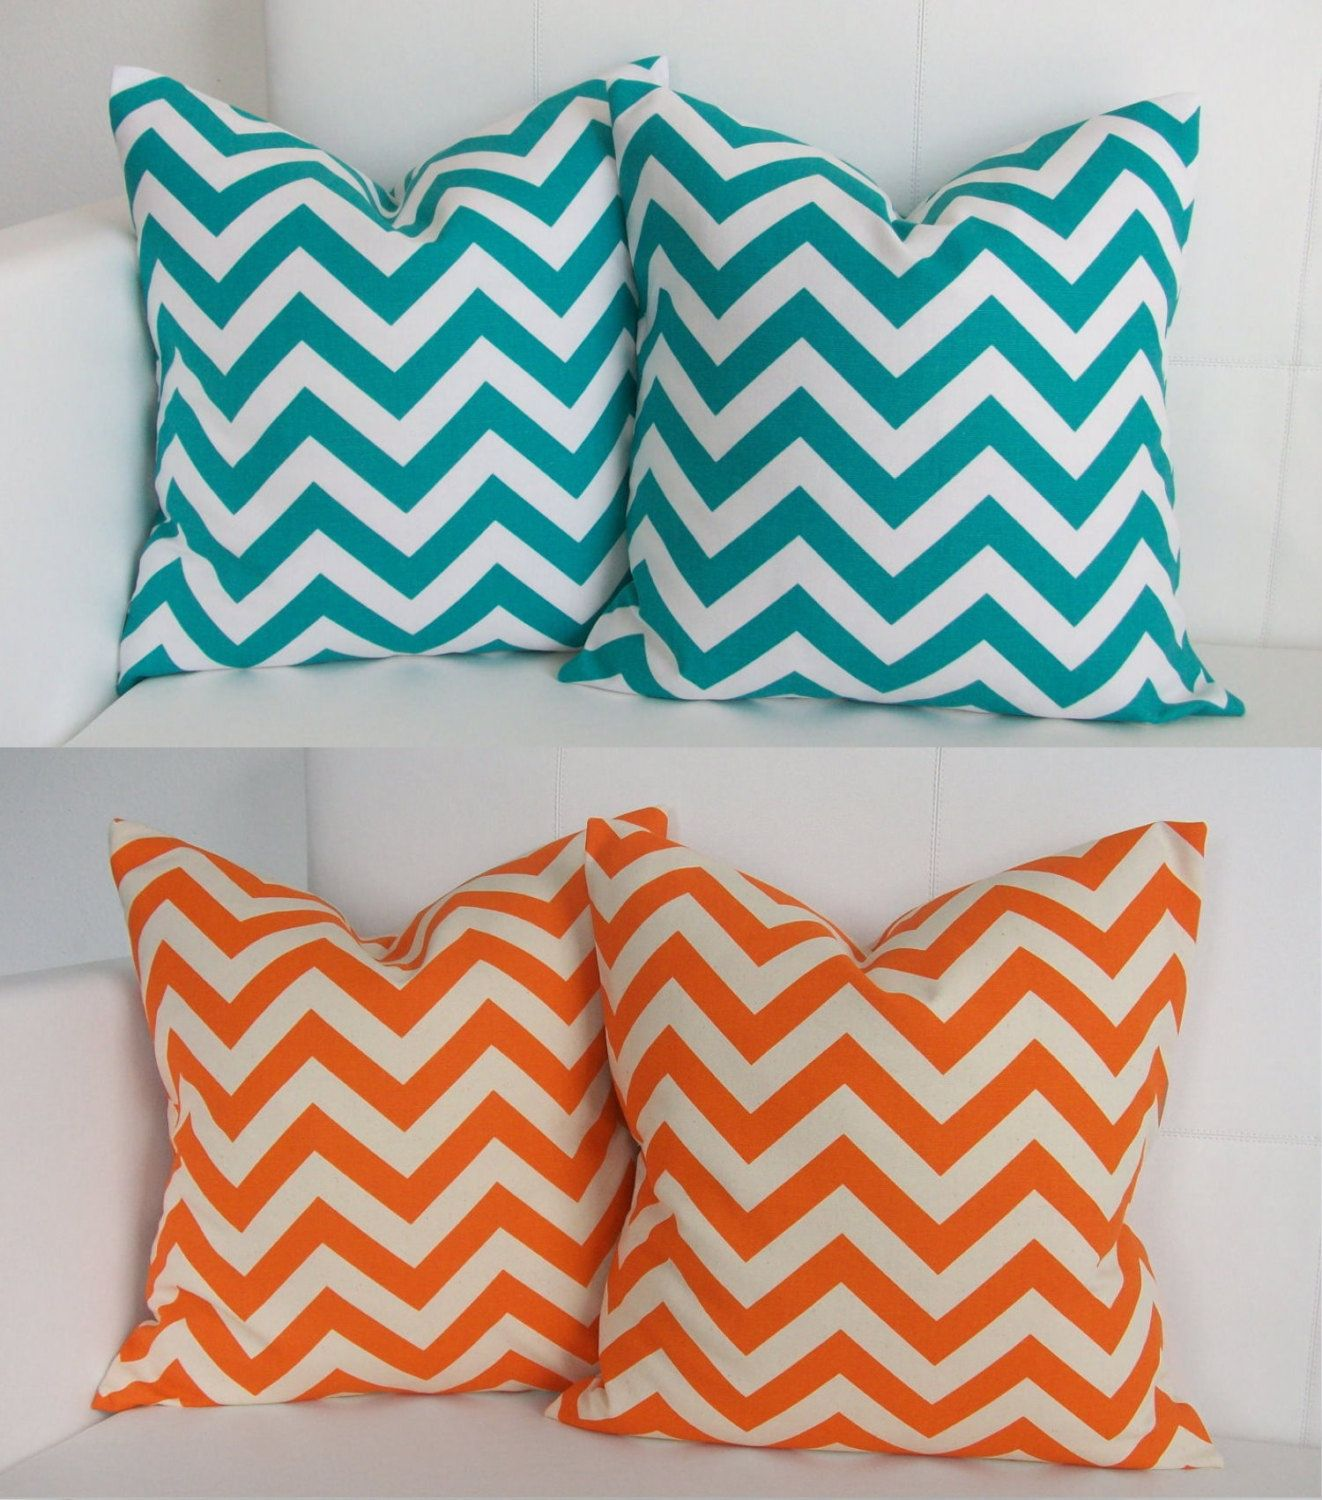 Decorative Throw Pillows Etsy : Four Turquoise and Orange Decorative Accent Throw Pillow Covers for Pillows Four. $70.00, via ...